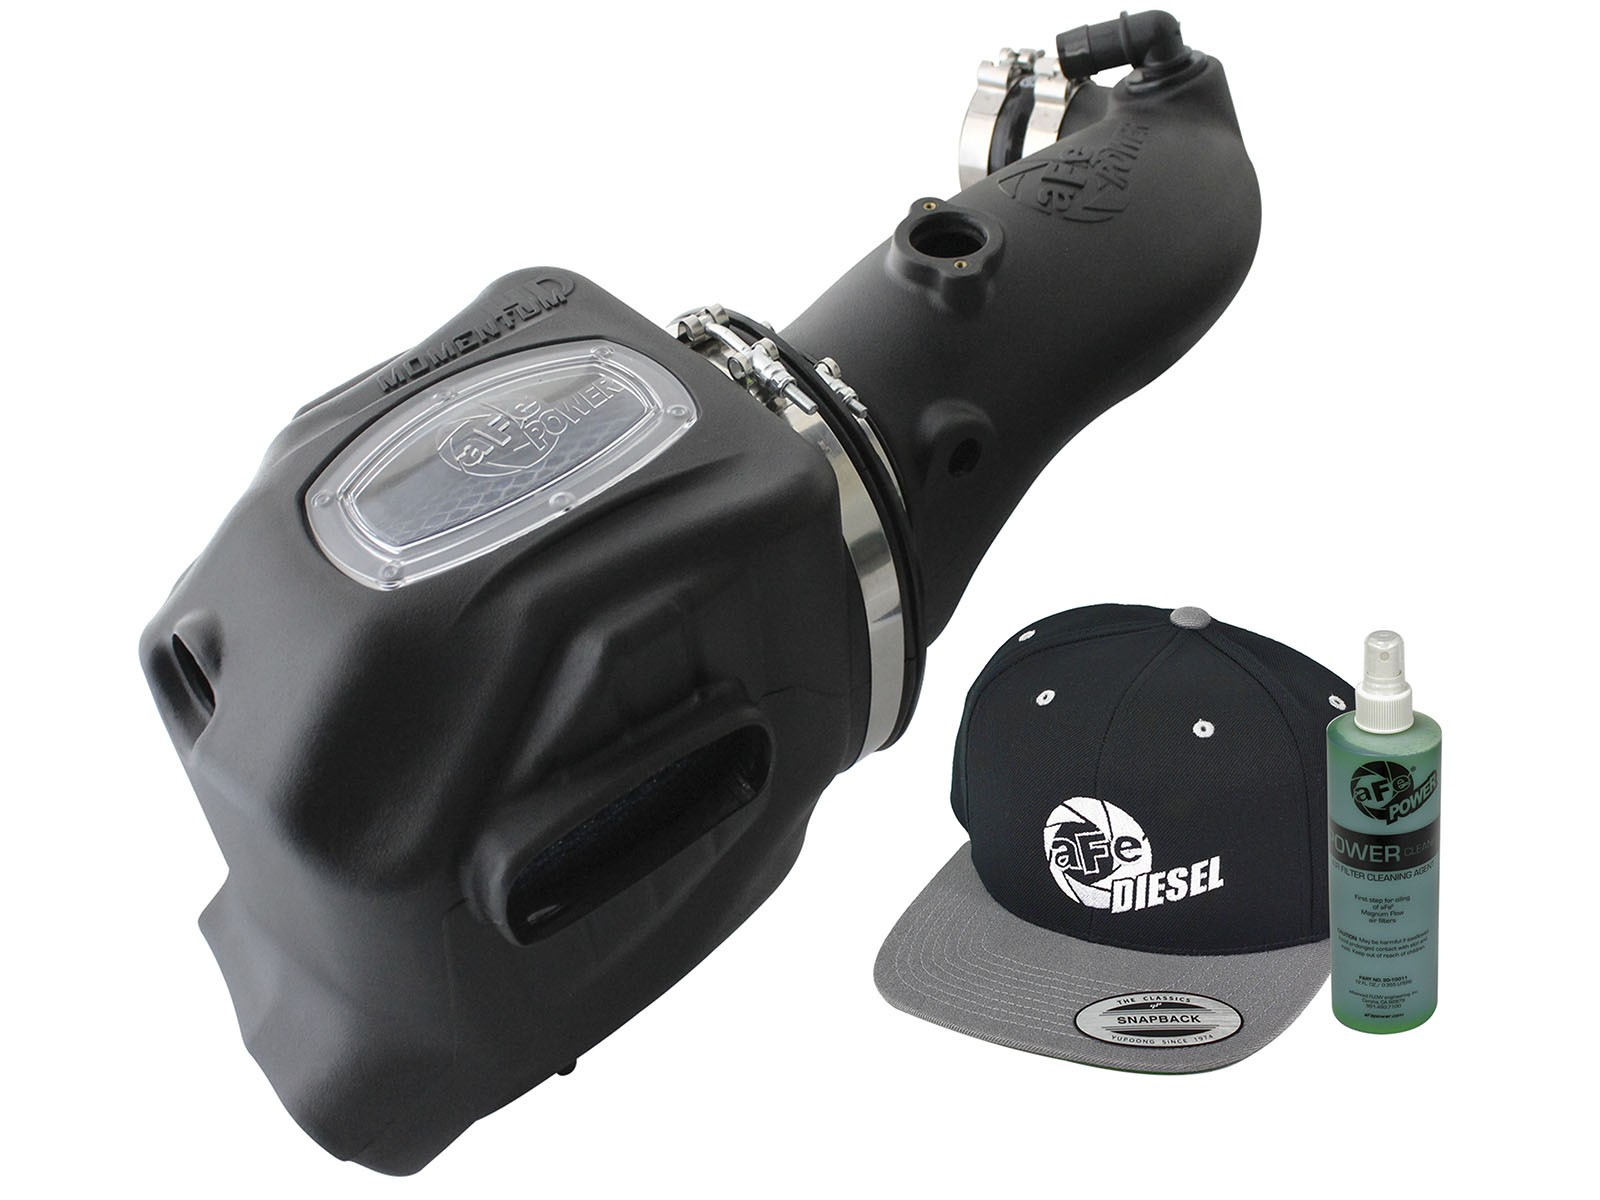 aFe POWER Diesel Elite Momentum HD Pro DRY S Cold Air Intake System Ford F-250/F-350/F-450/F-550 V8 6.4L (td) 08-10